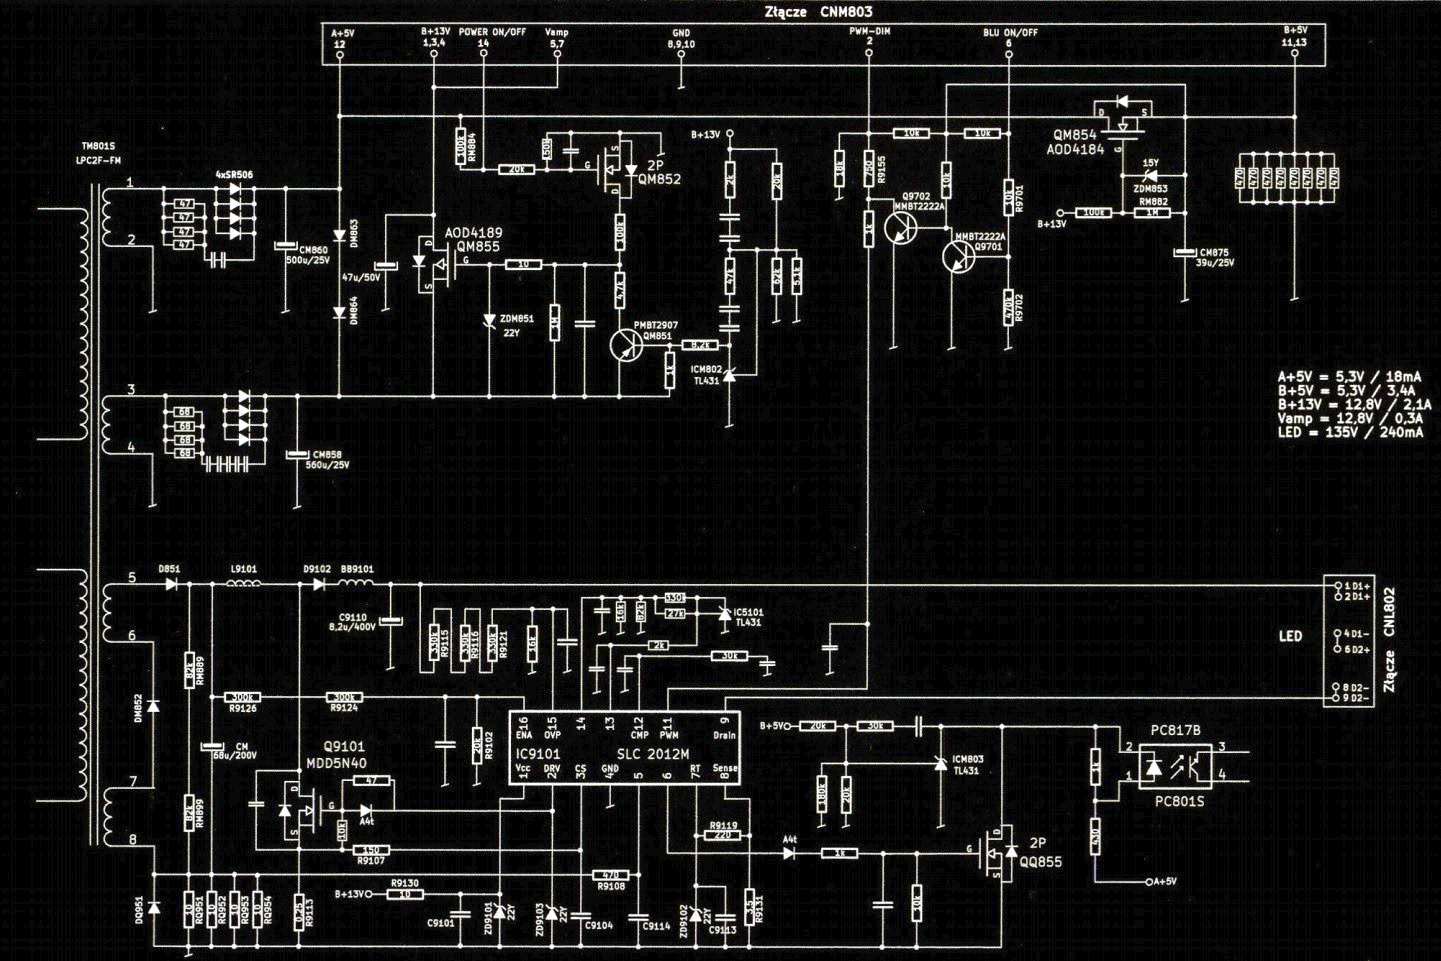 Simple Fm Transmitter Bug additionally Toshiba Le3273 Toshiba Le3973 Led Lcd additionally Electronic schematic additionally Lg Power Supply Eay62810801 Schematic together with Schematic Diagram Of The. on tv circuit schematics